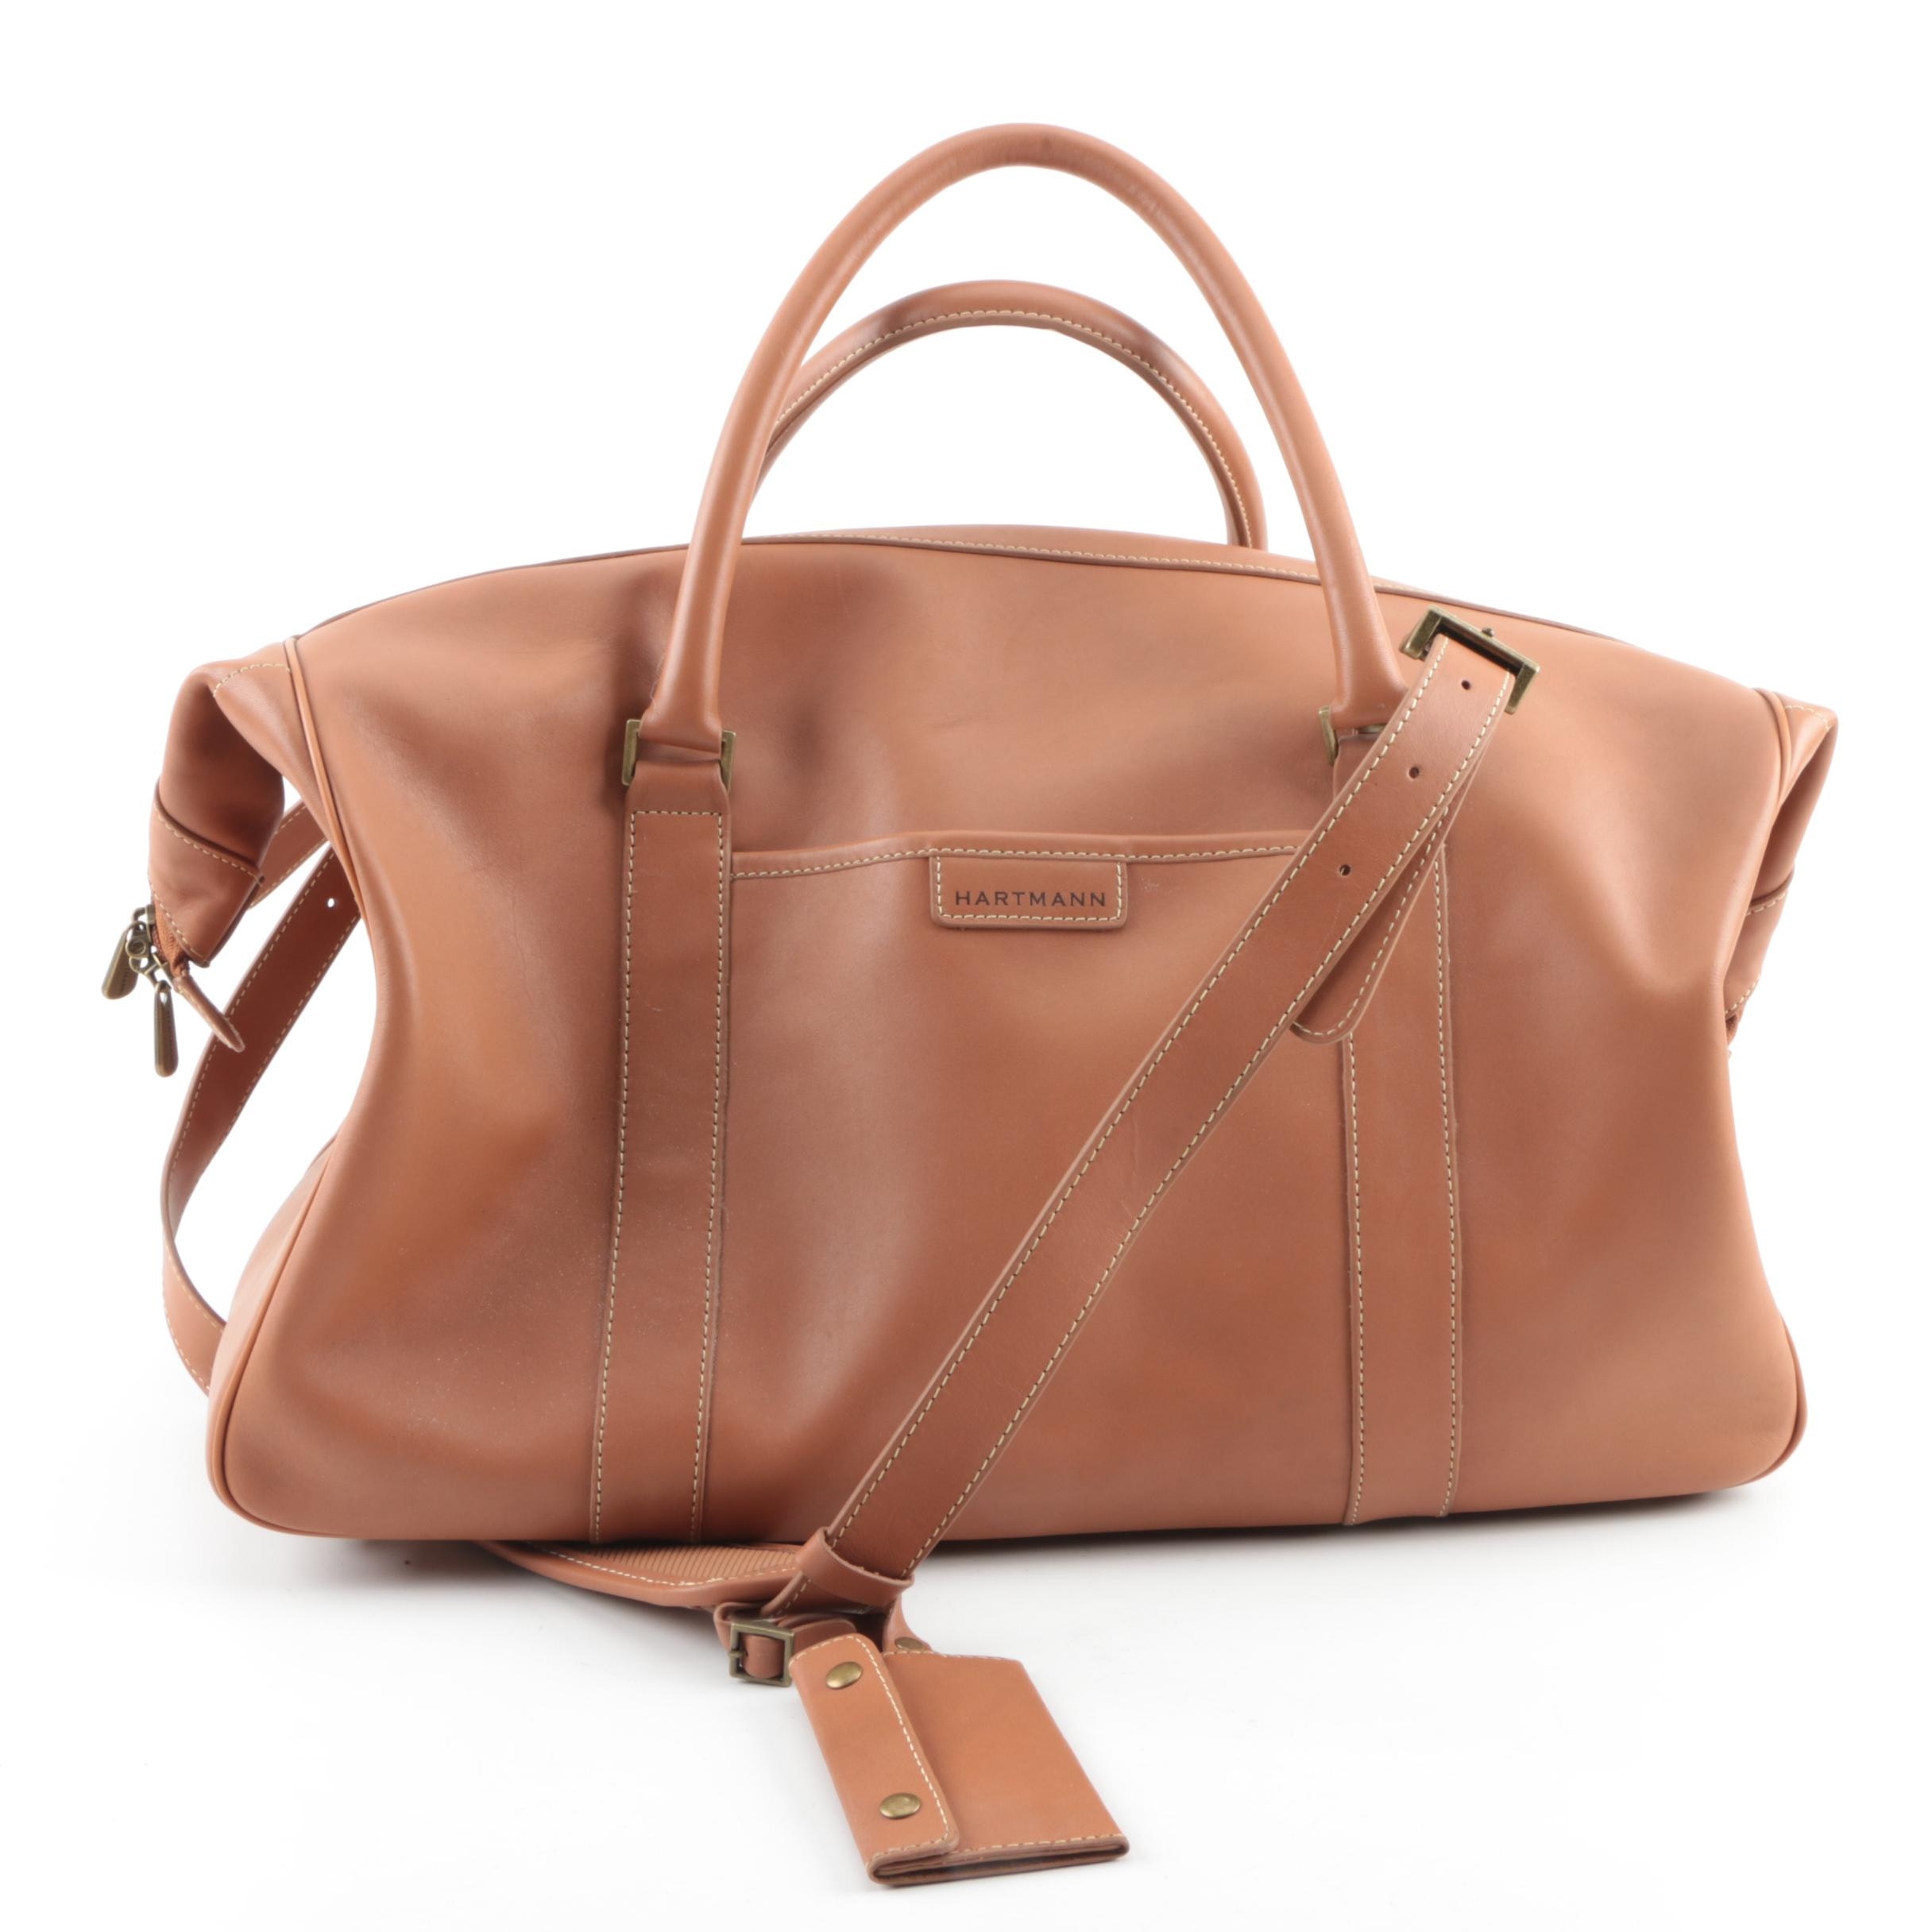 Hartmann Reserve Collection Valise Tan Leather Carry-On Bag